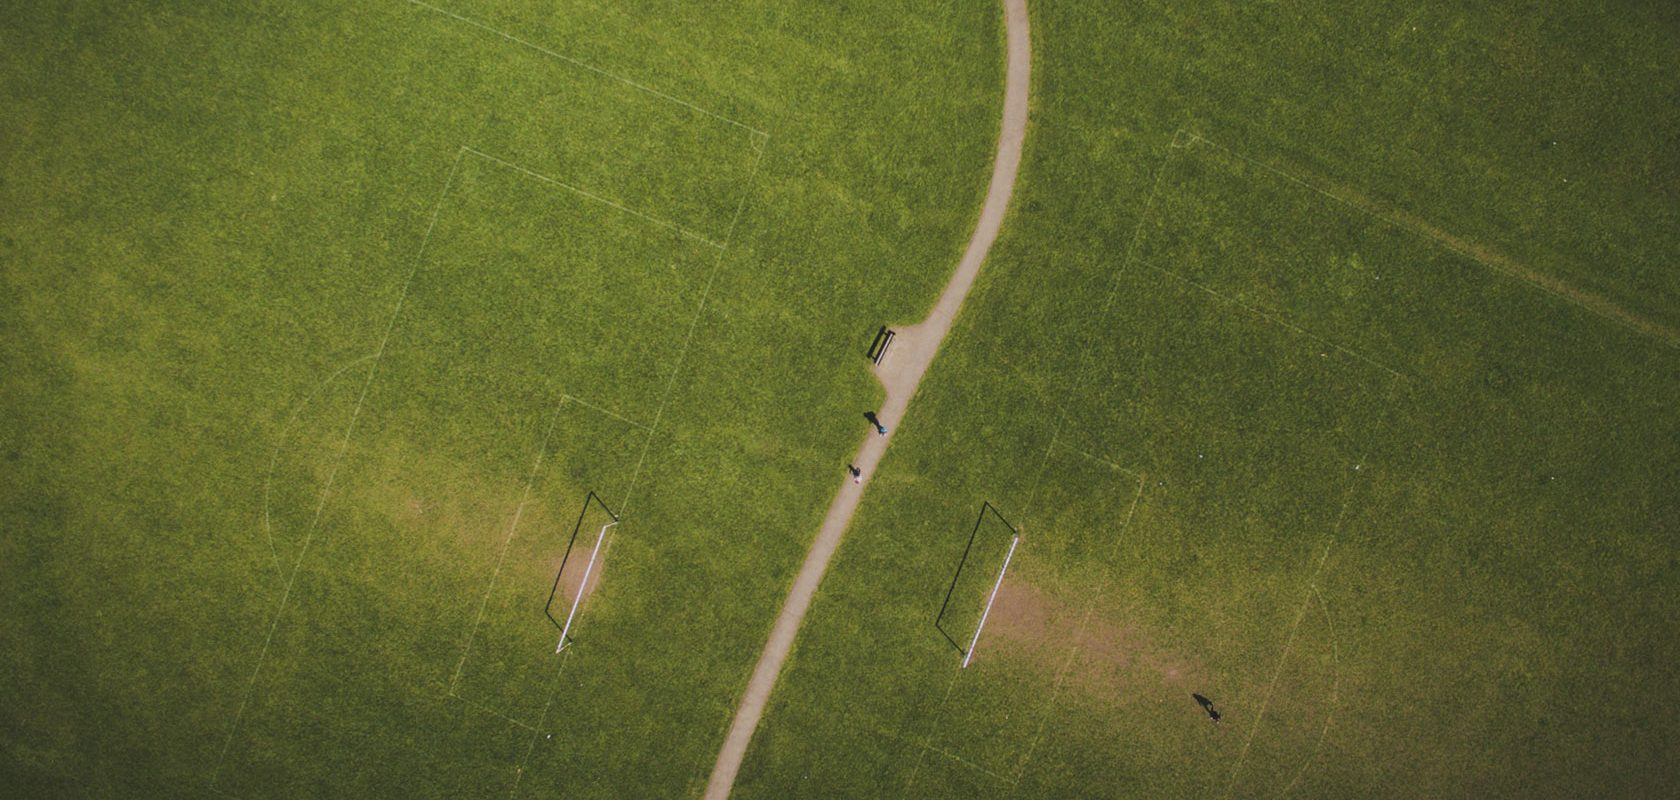 An aerial view of a football field.